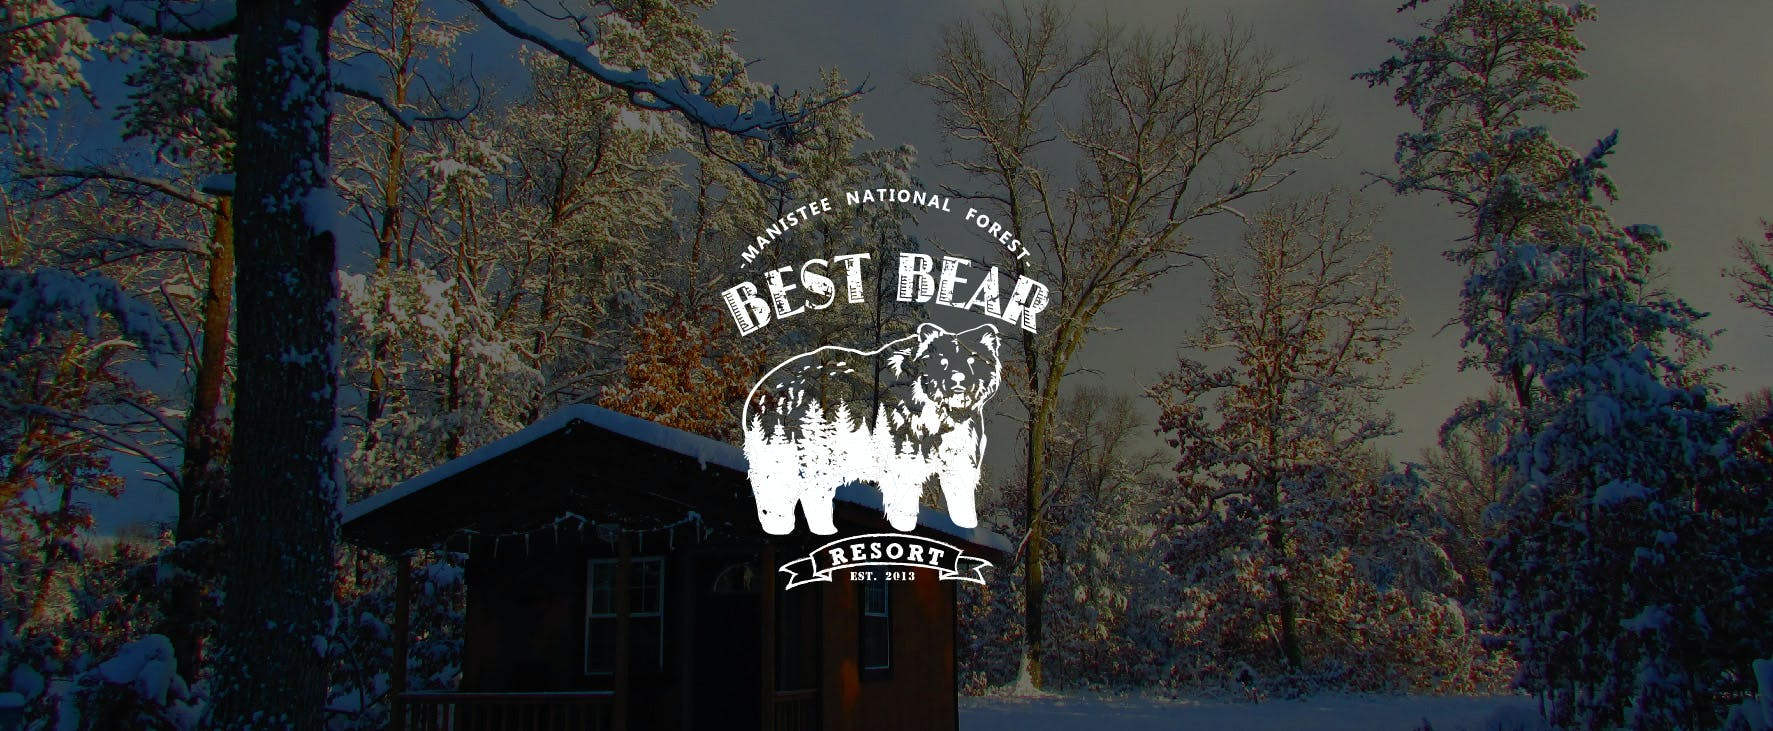 Best Bear Lodge(佳熊公寓式酒店)